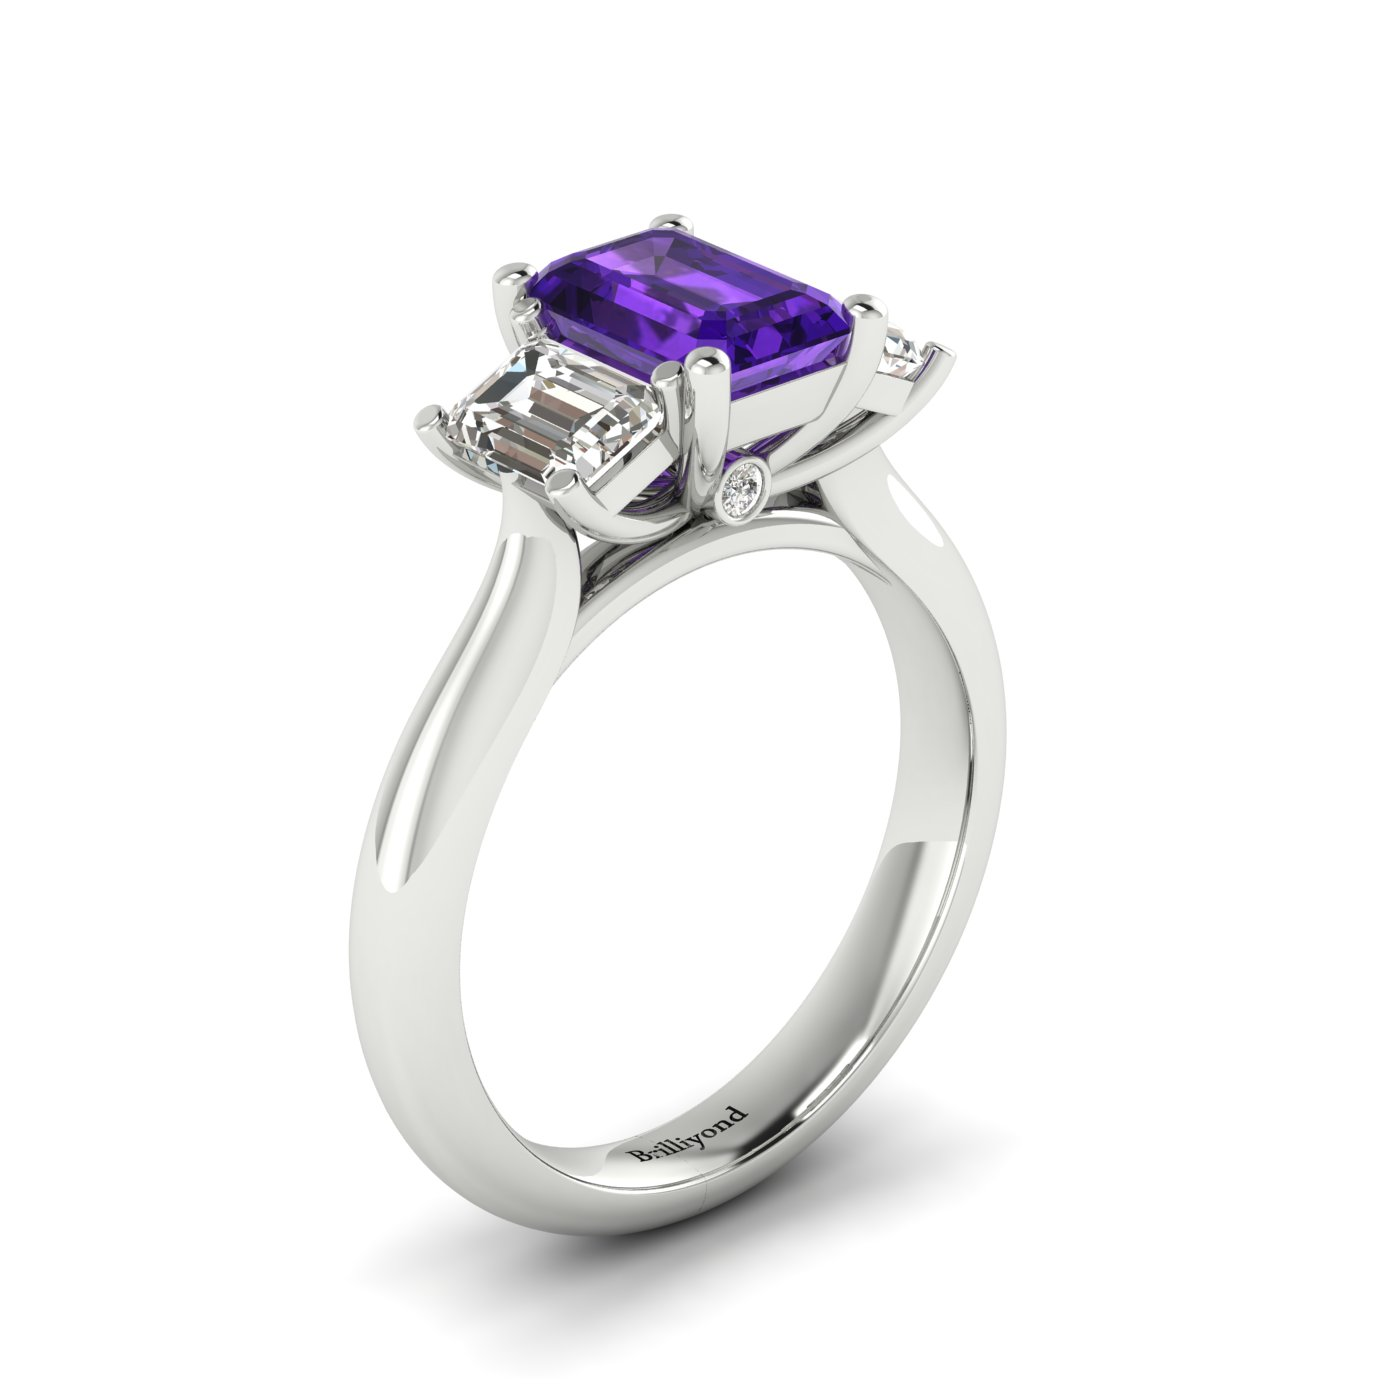 Amethyst White Gold Emerald Cut Engagement Ring Blanche_image2